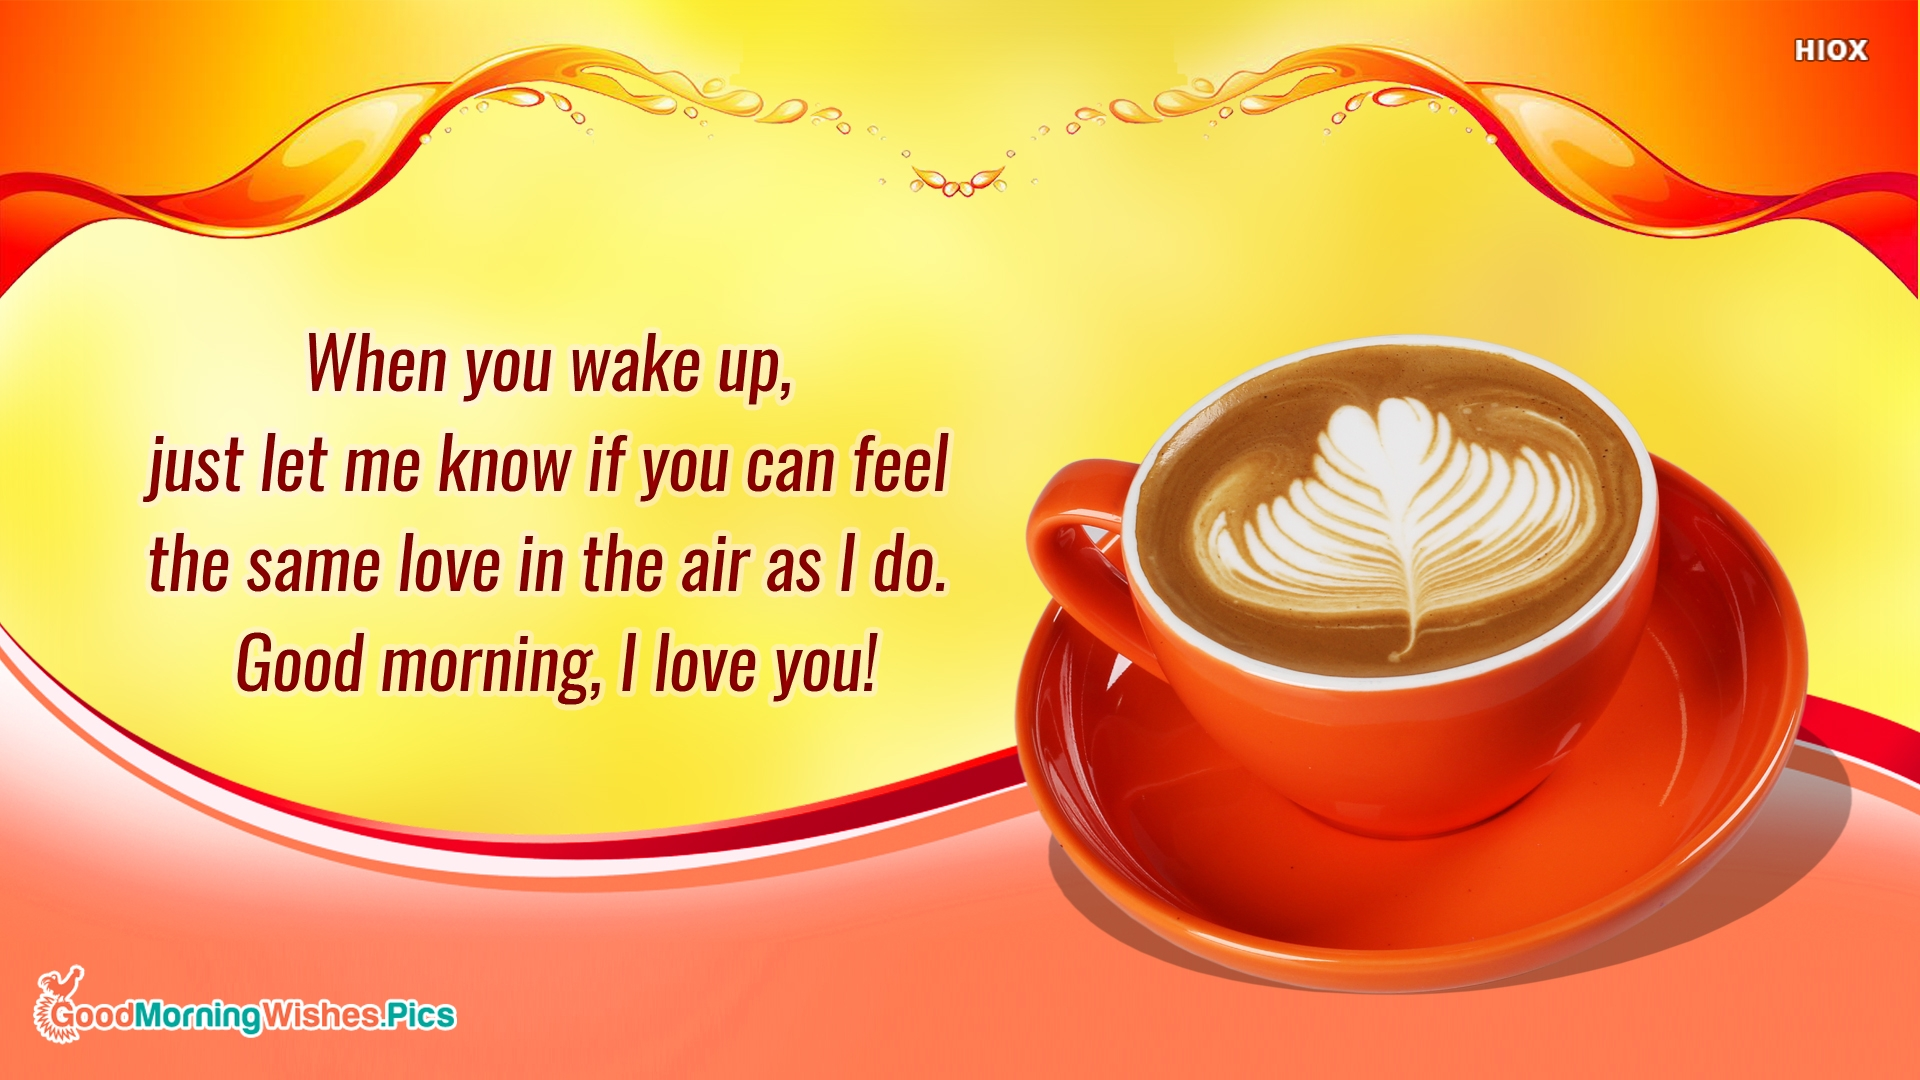 When You Wake Up, Just Let Me Know If You Can Feel The Same Love In The Air As I Do. Good Morning, I Love You!